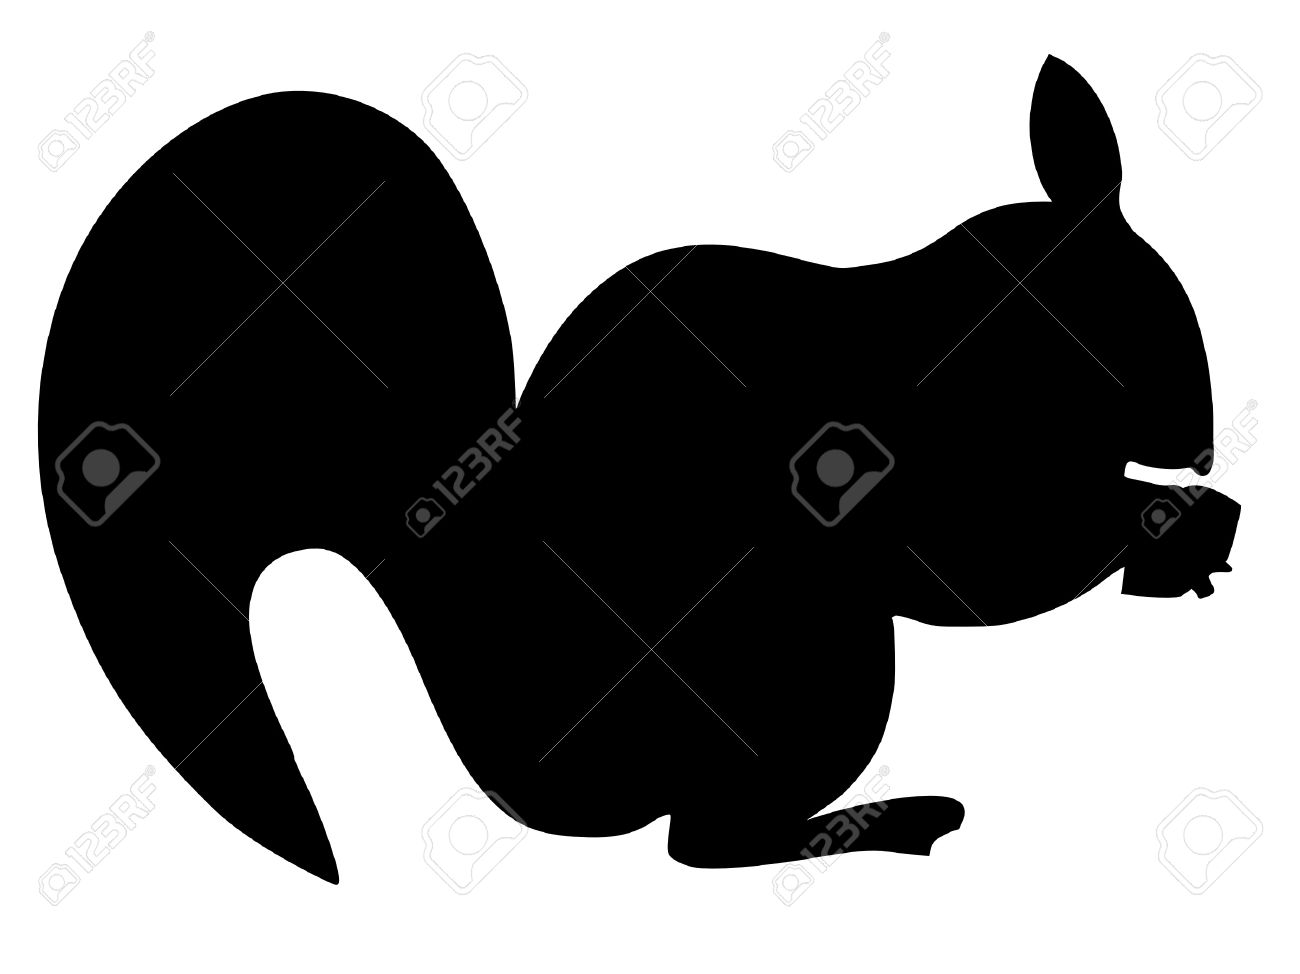 squirrel silhouette images  stock pictures royalty free squirrel  - squirrel silhouette a black silhouette of serie of animals squirrel